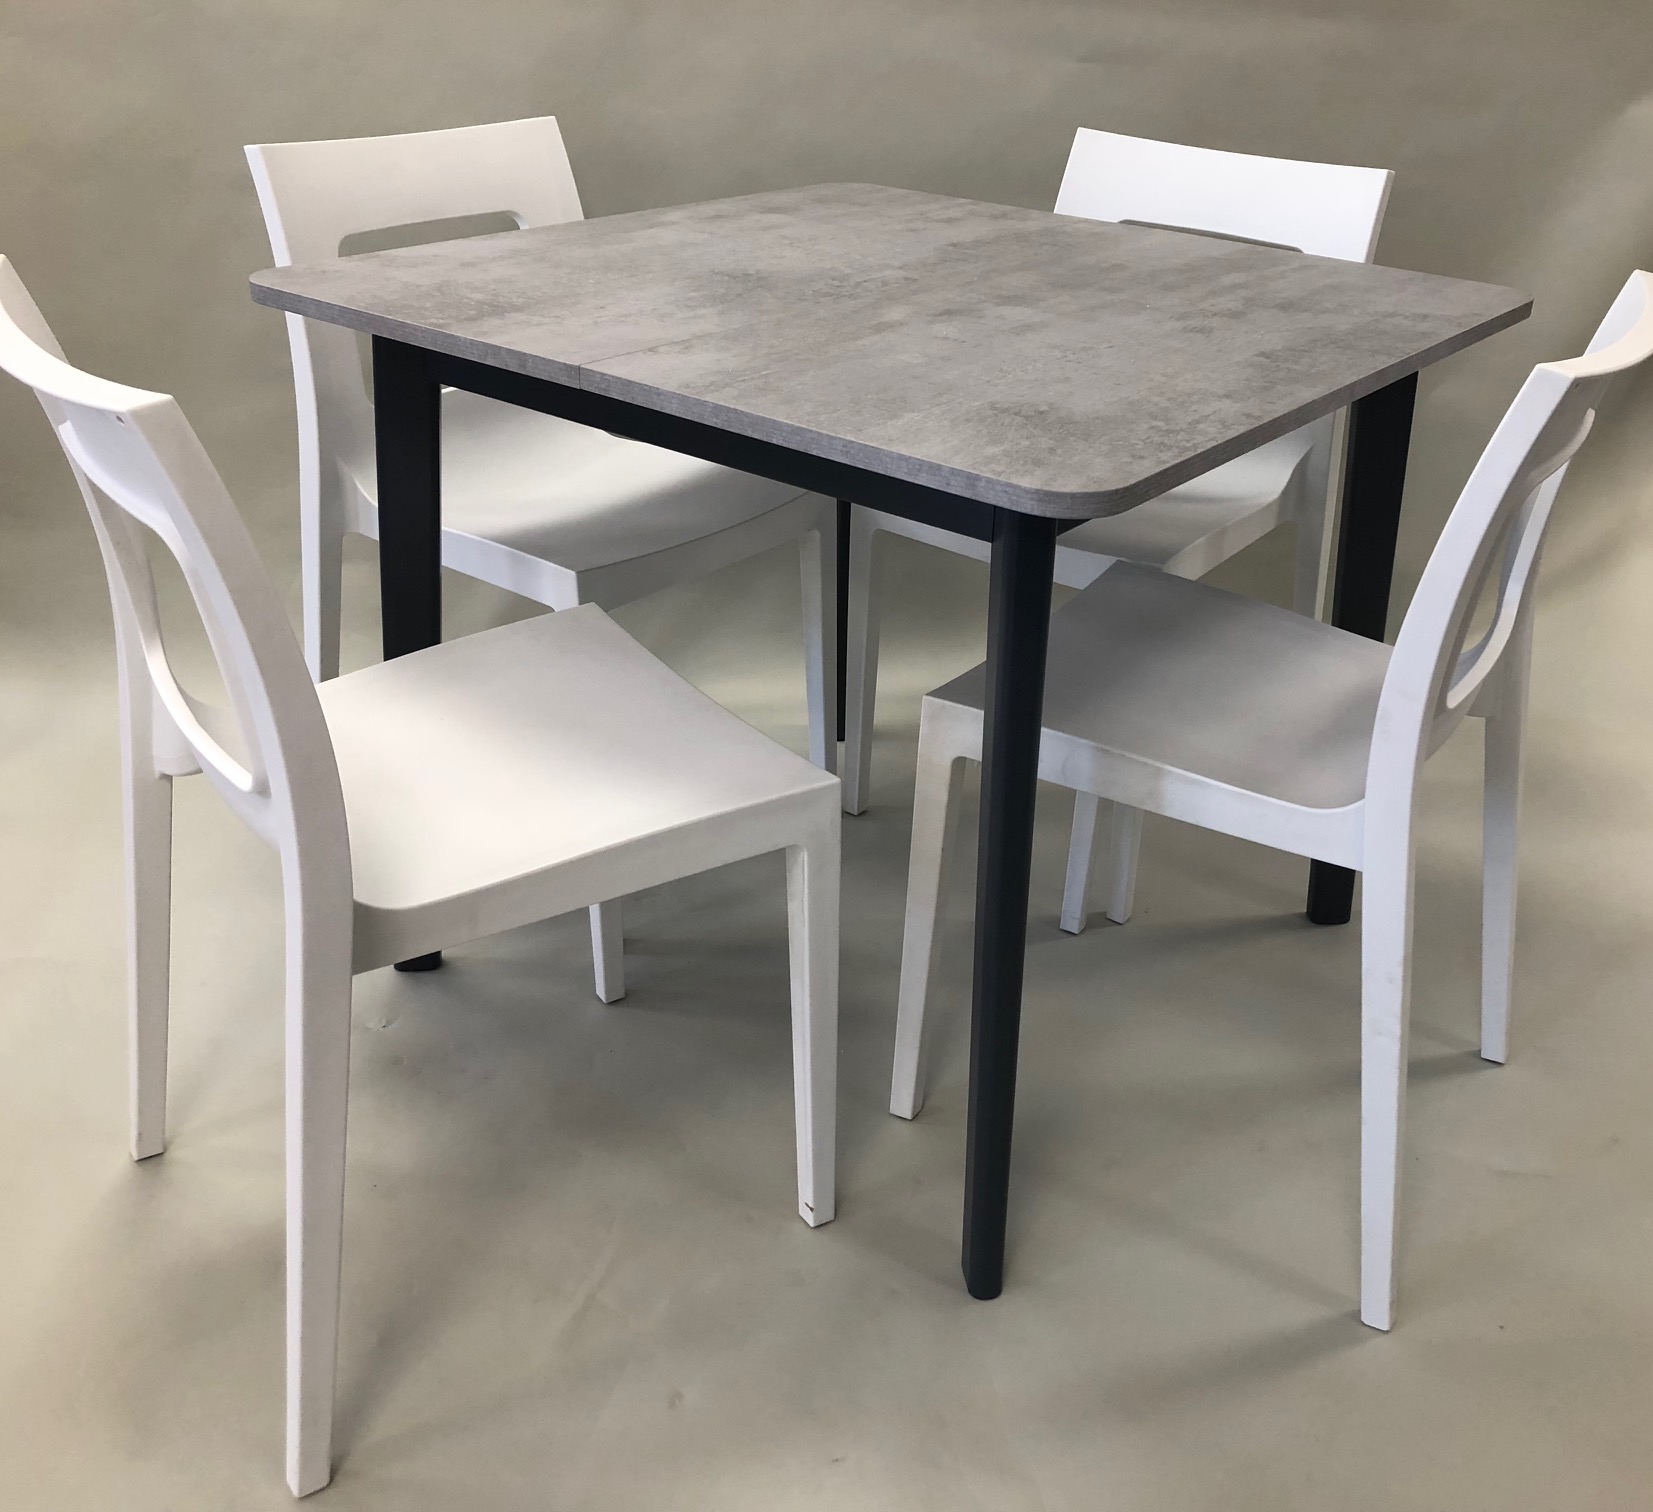 Dining Rooms For Sale: Ex-Rental Dining Room Sets For Sale In Surrey